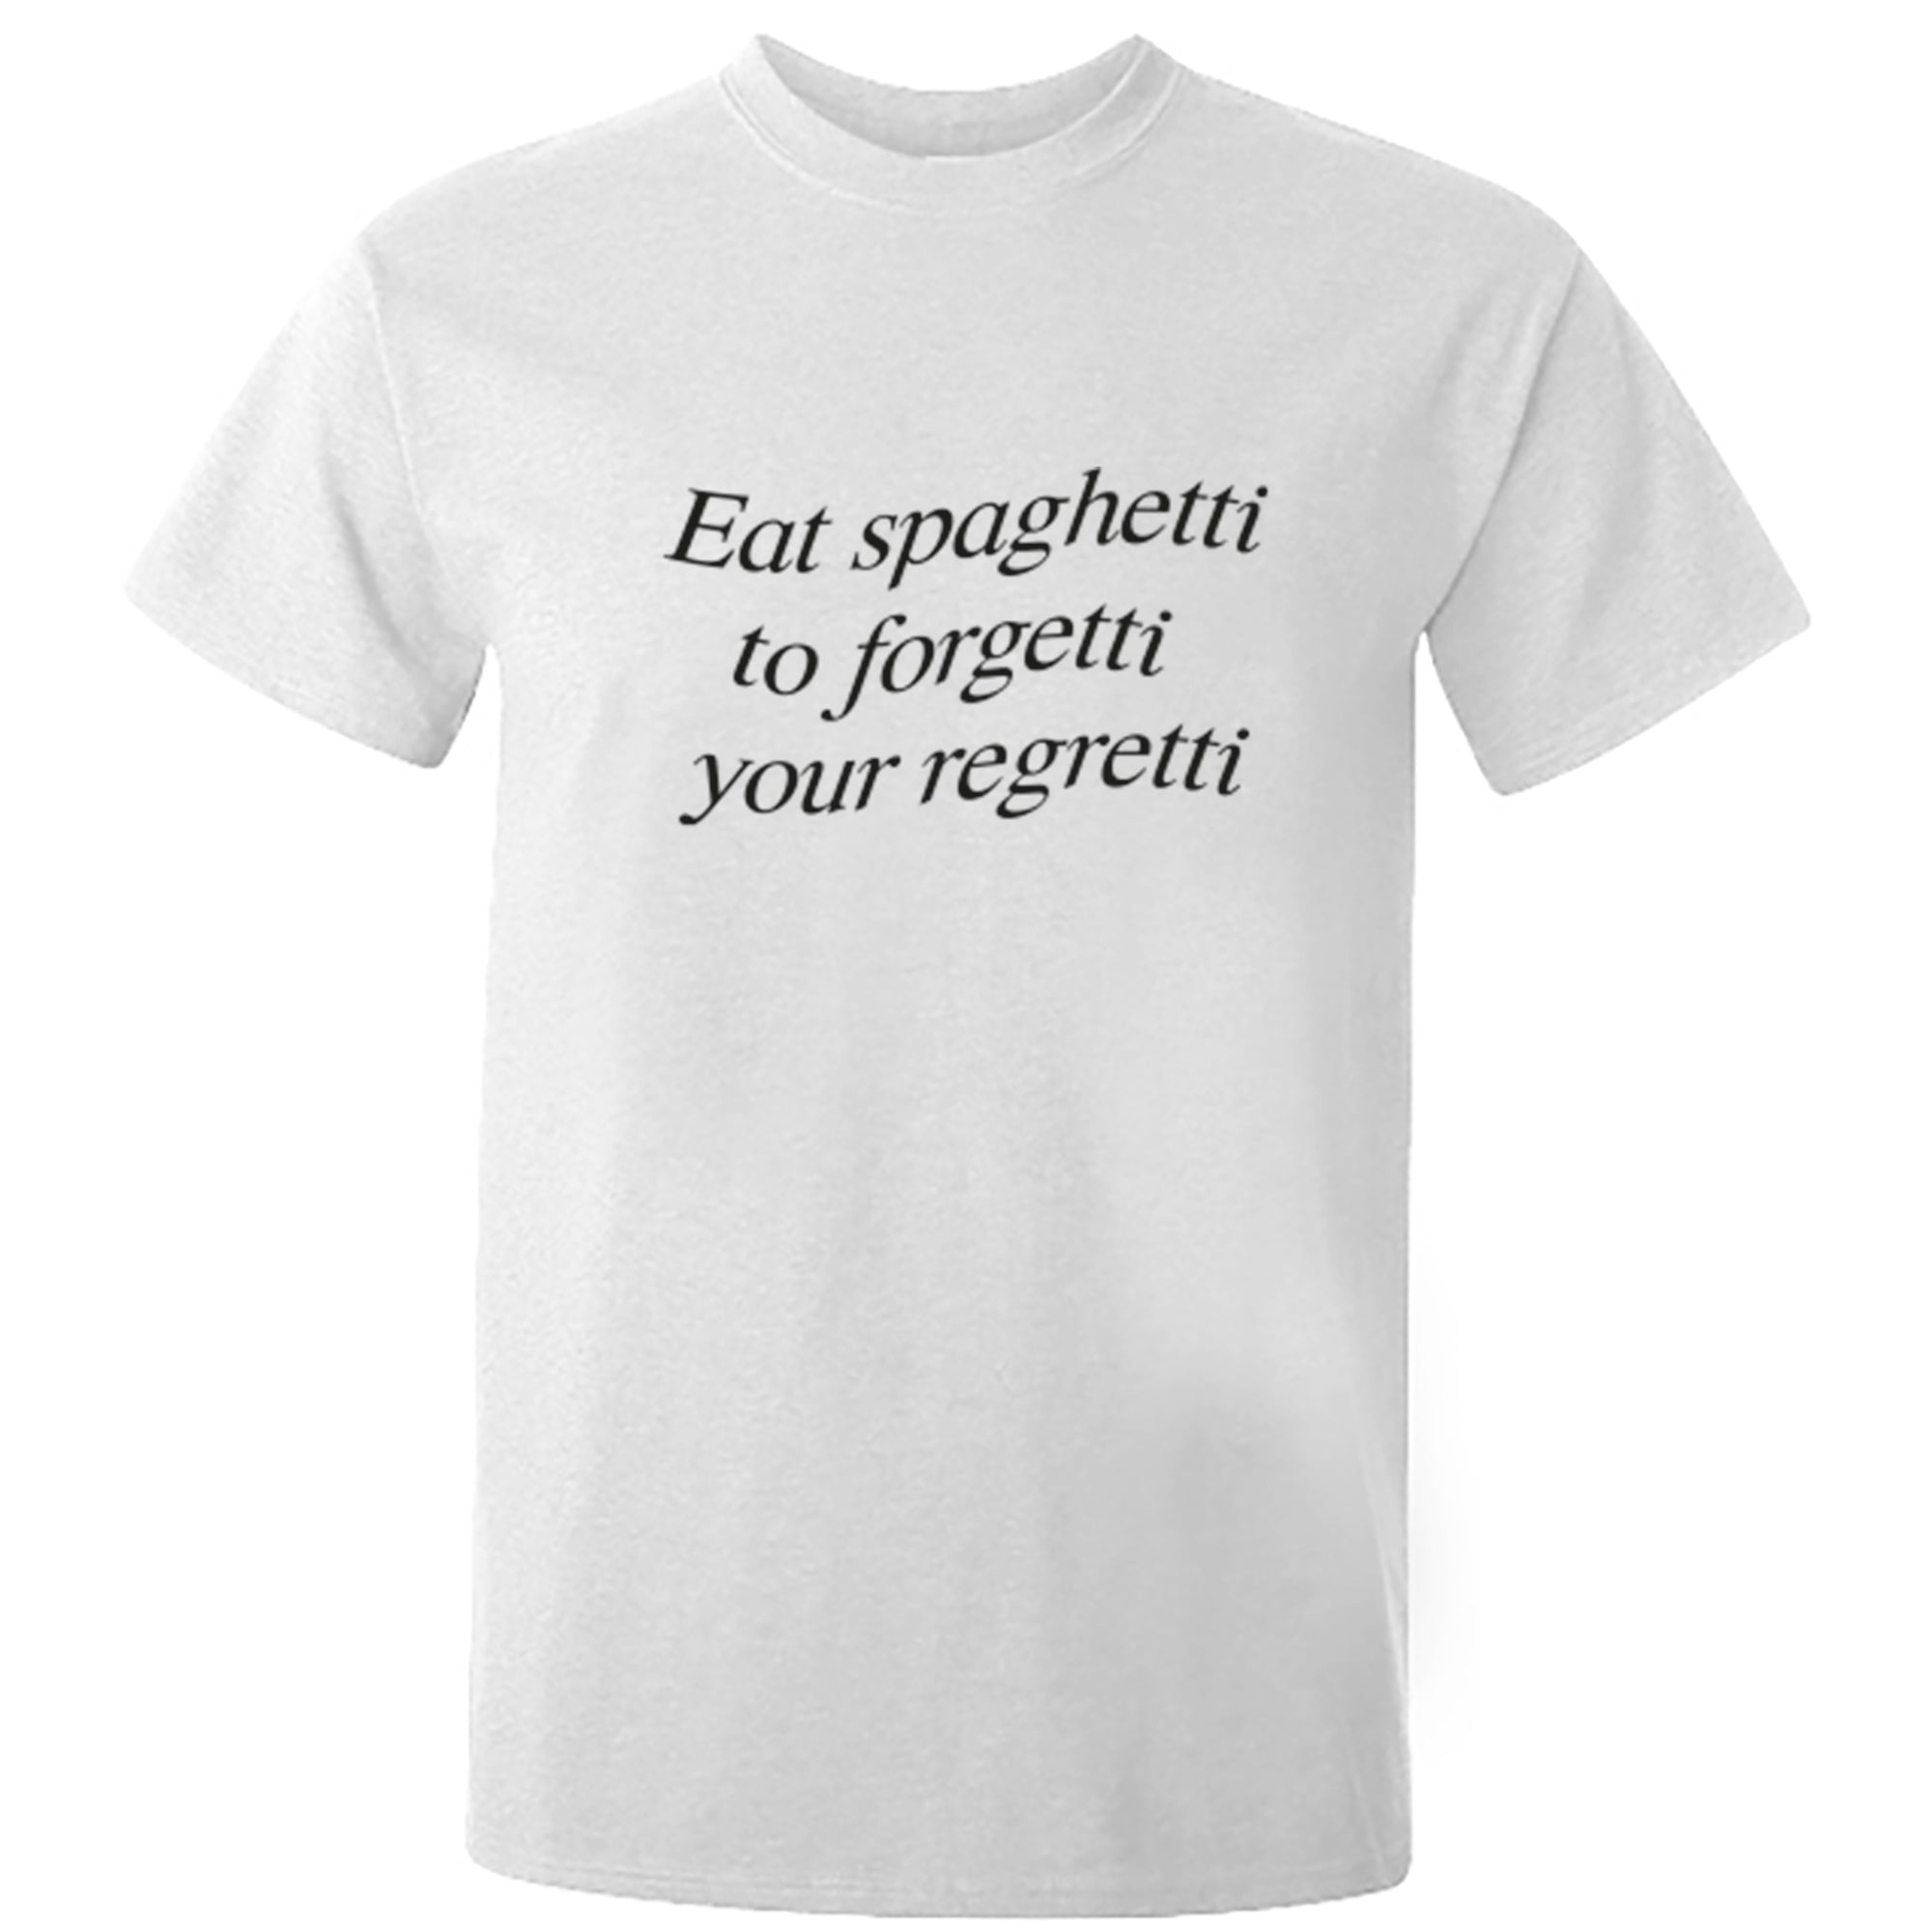 Eat Spaghetti To Forgetti Your Regretti Unisex Fit T-Shirt S0900 - Illustrated Identity Ltd.